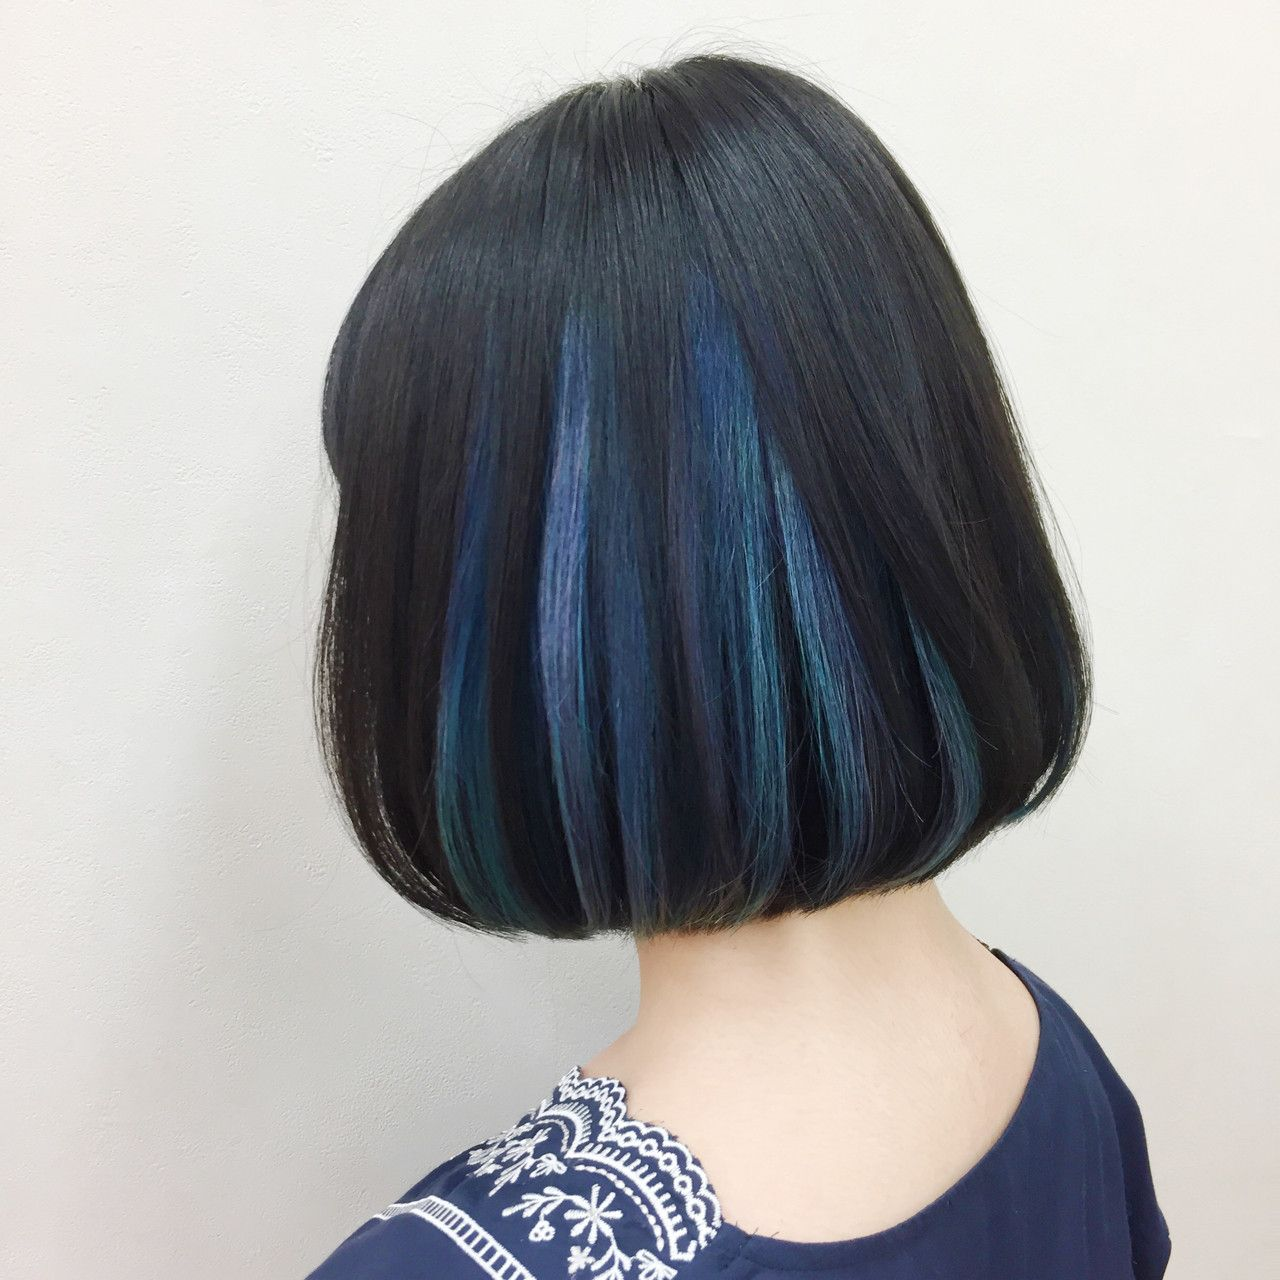 Pin By Declan Hedit On Pretty Hair With Images Aesthetic Hair